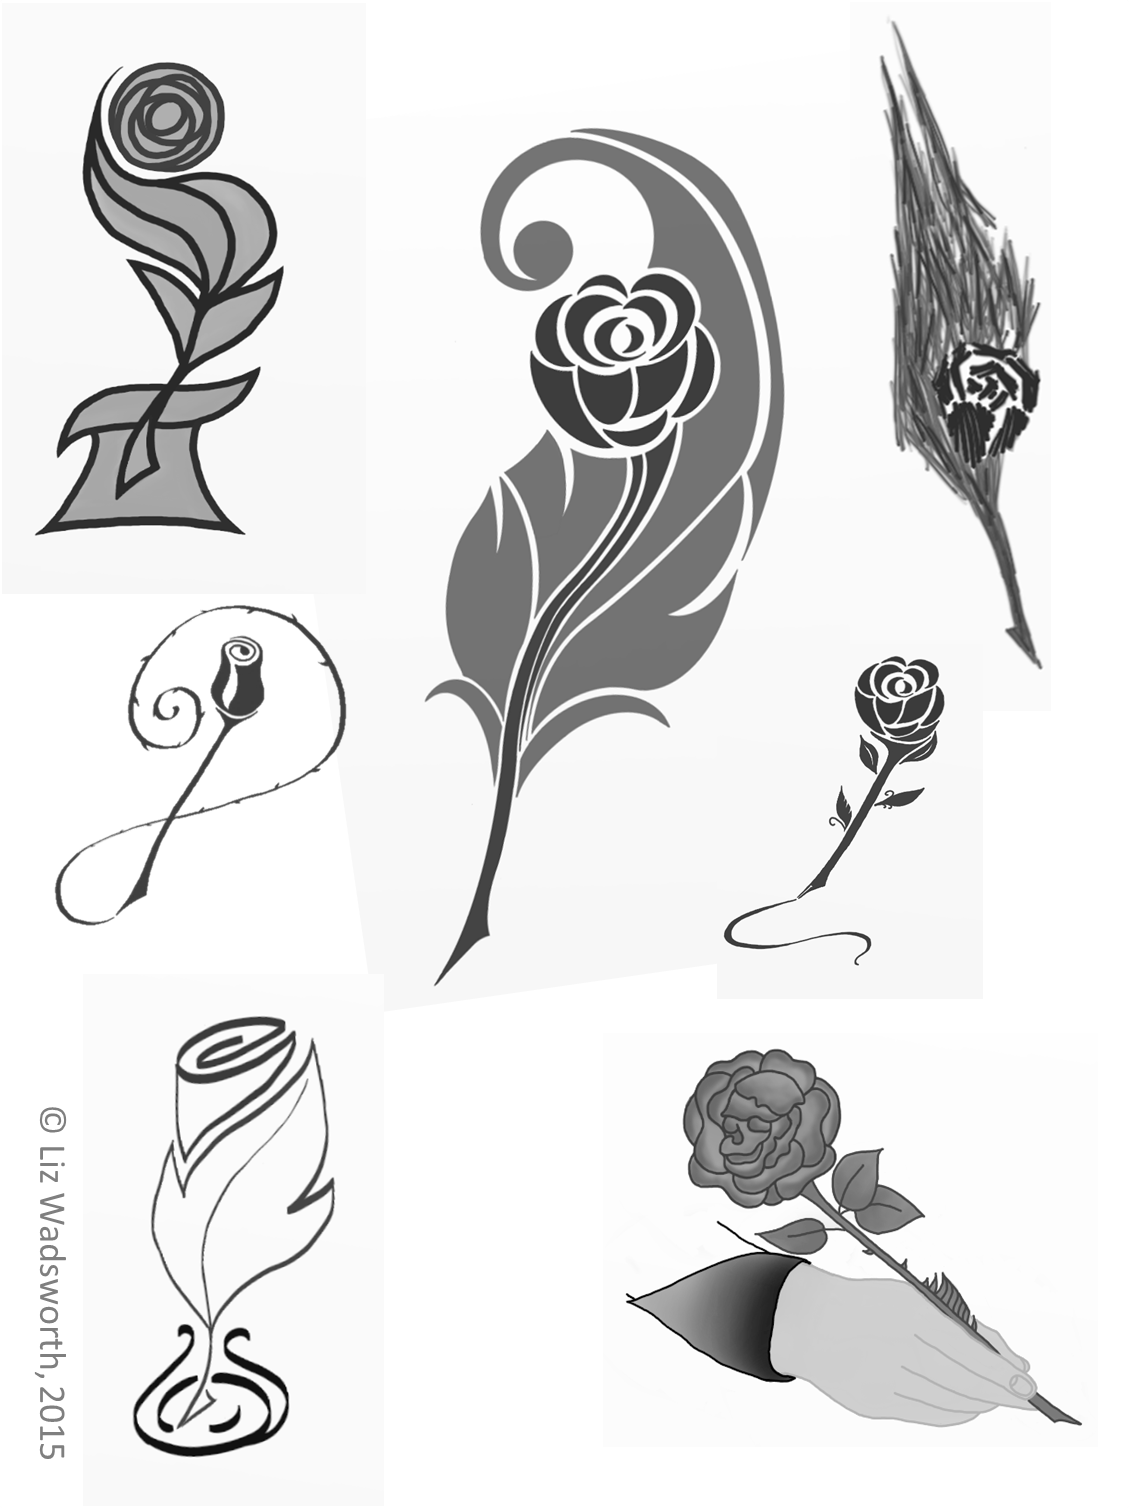 Rose Quills - Greyscale